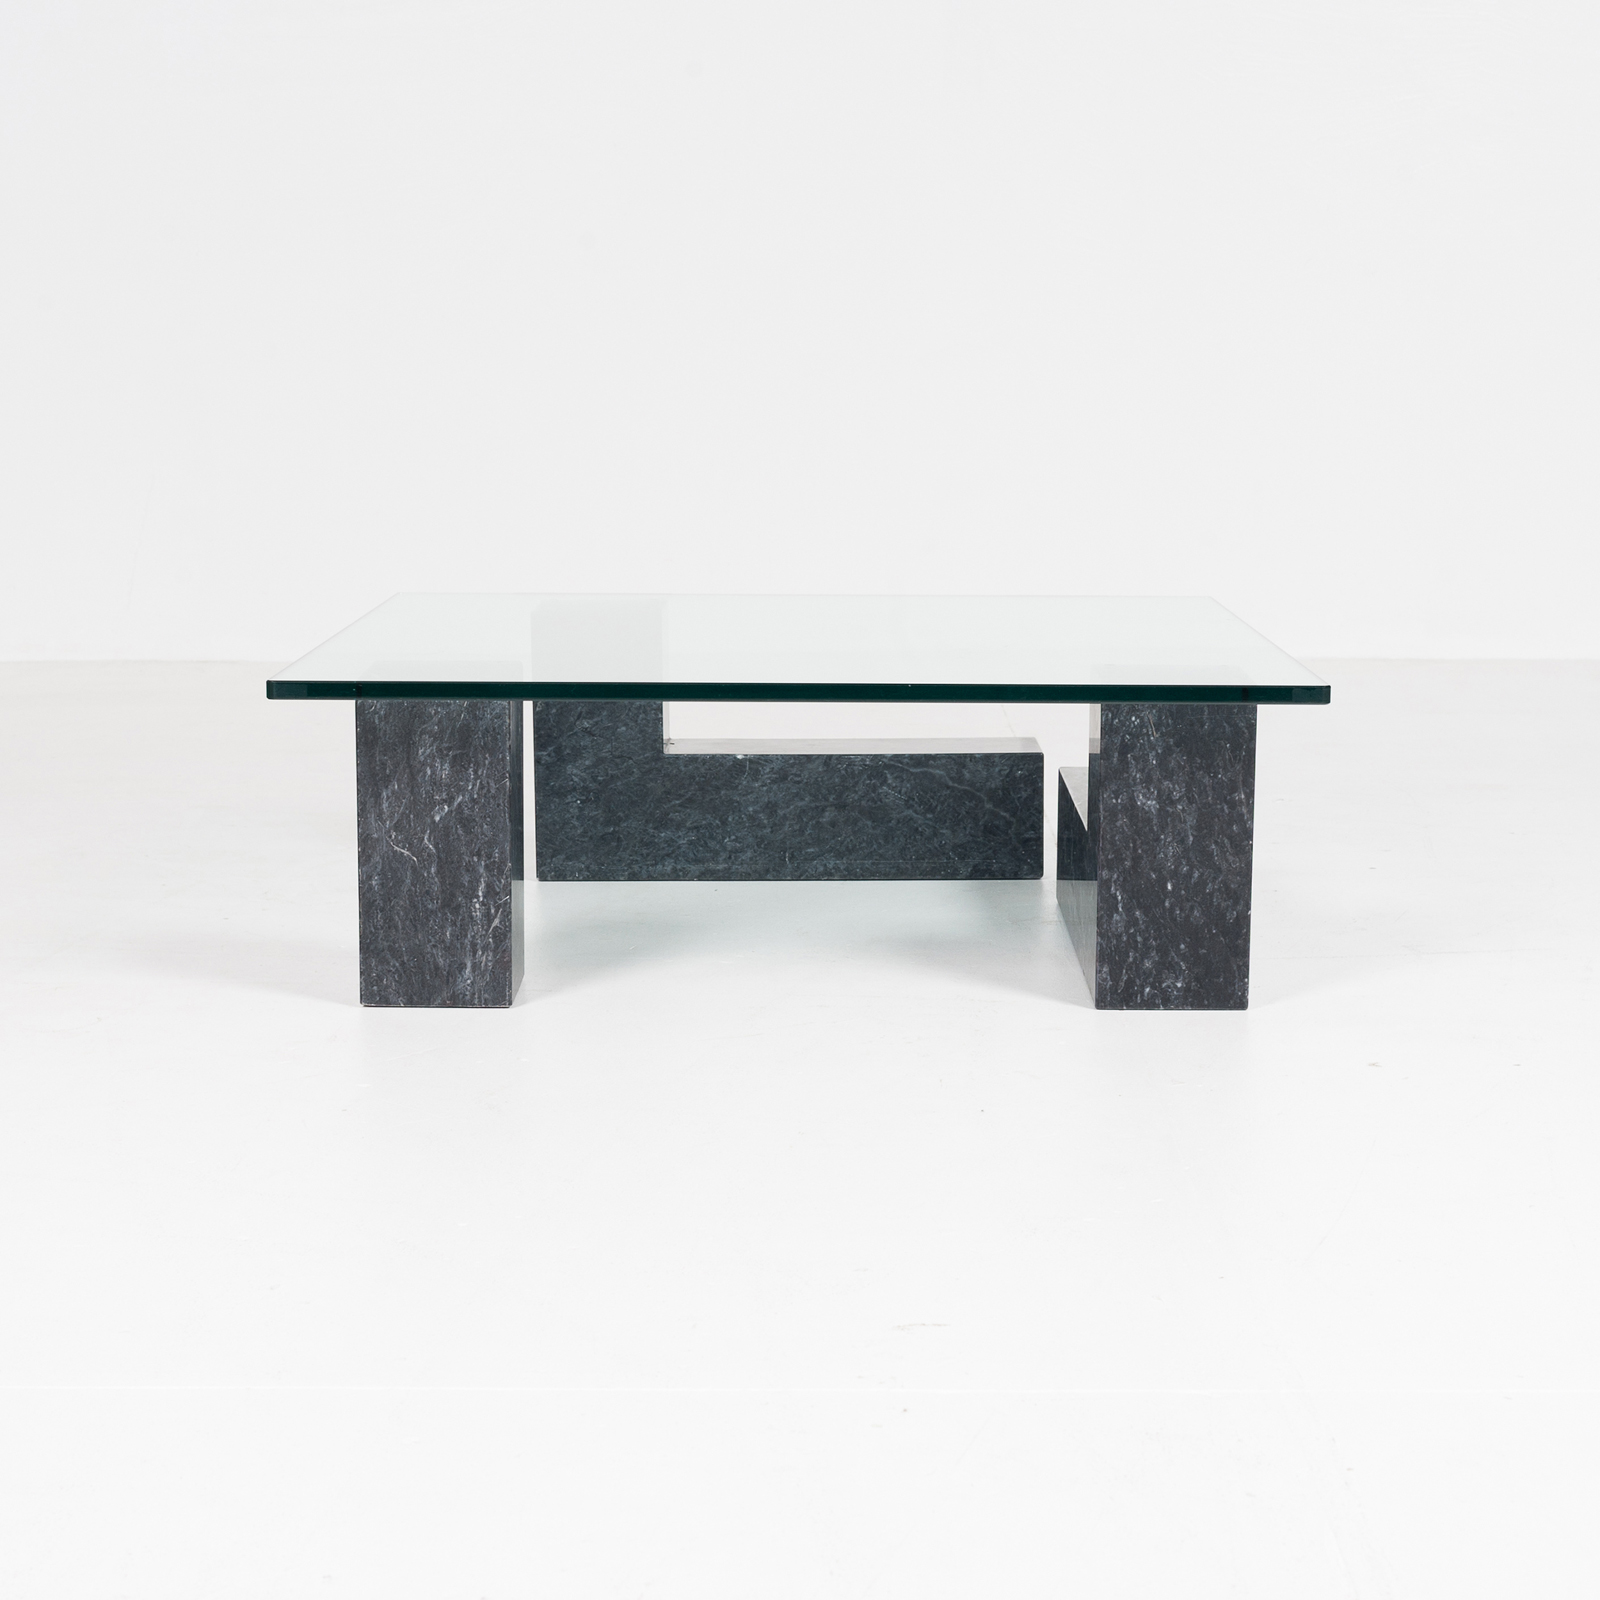 Coffee Table In Black Carrara Marble, 3 Elements With Glass Top, Dutch 1980s1